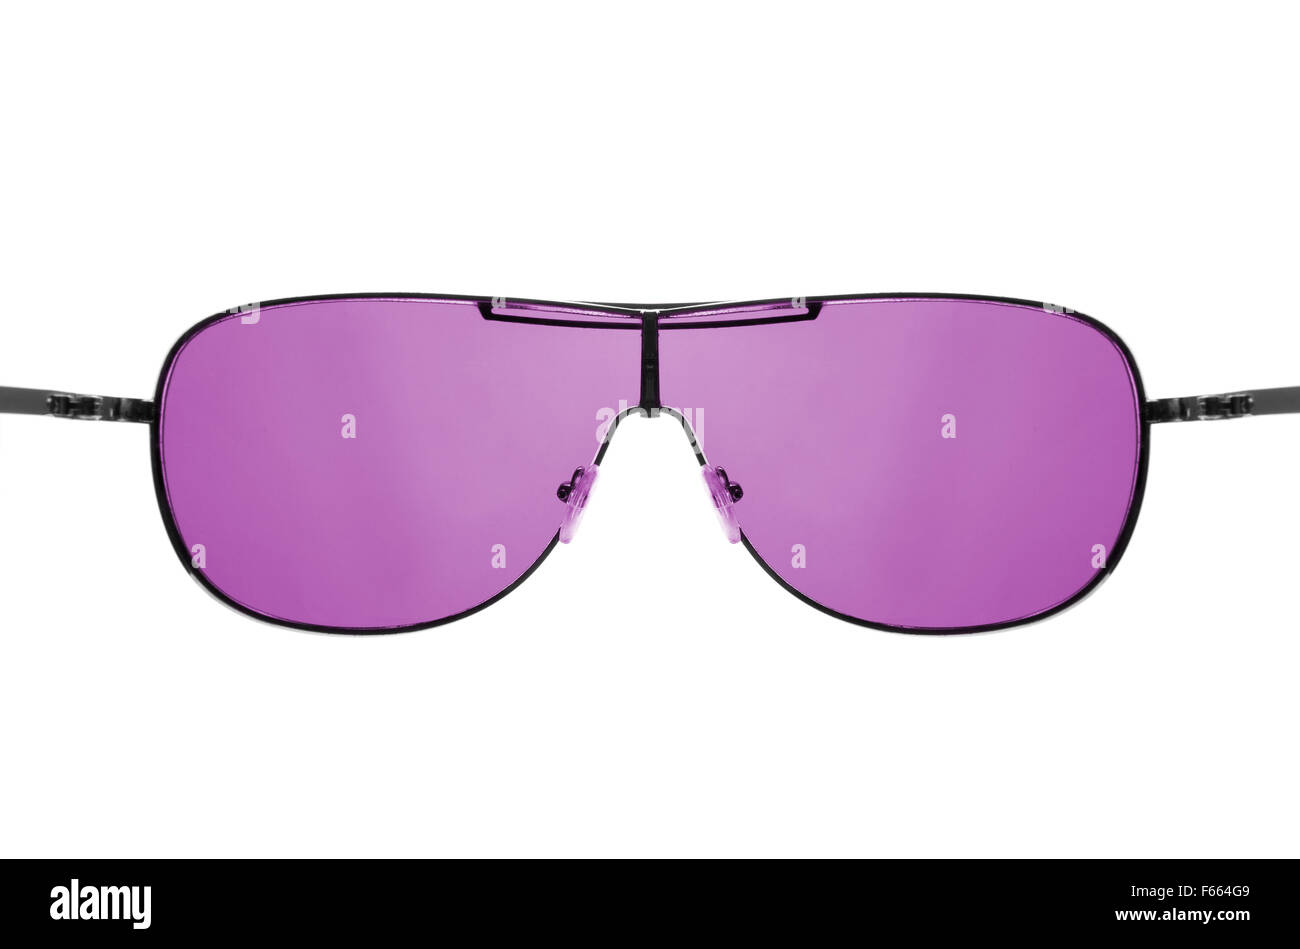 Wishful thinking concept. Look through pink sunglasses. Isolated on white - Stock Image